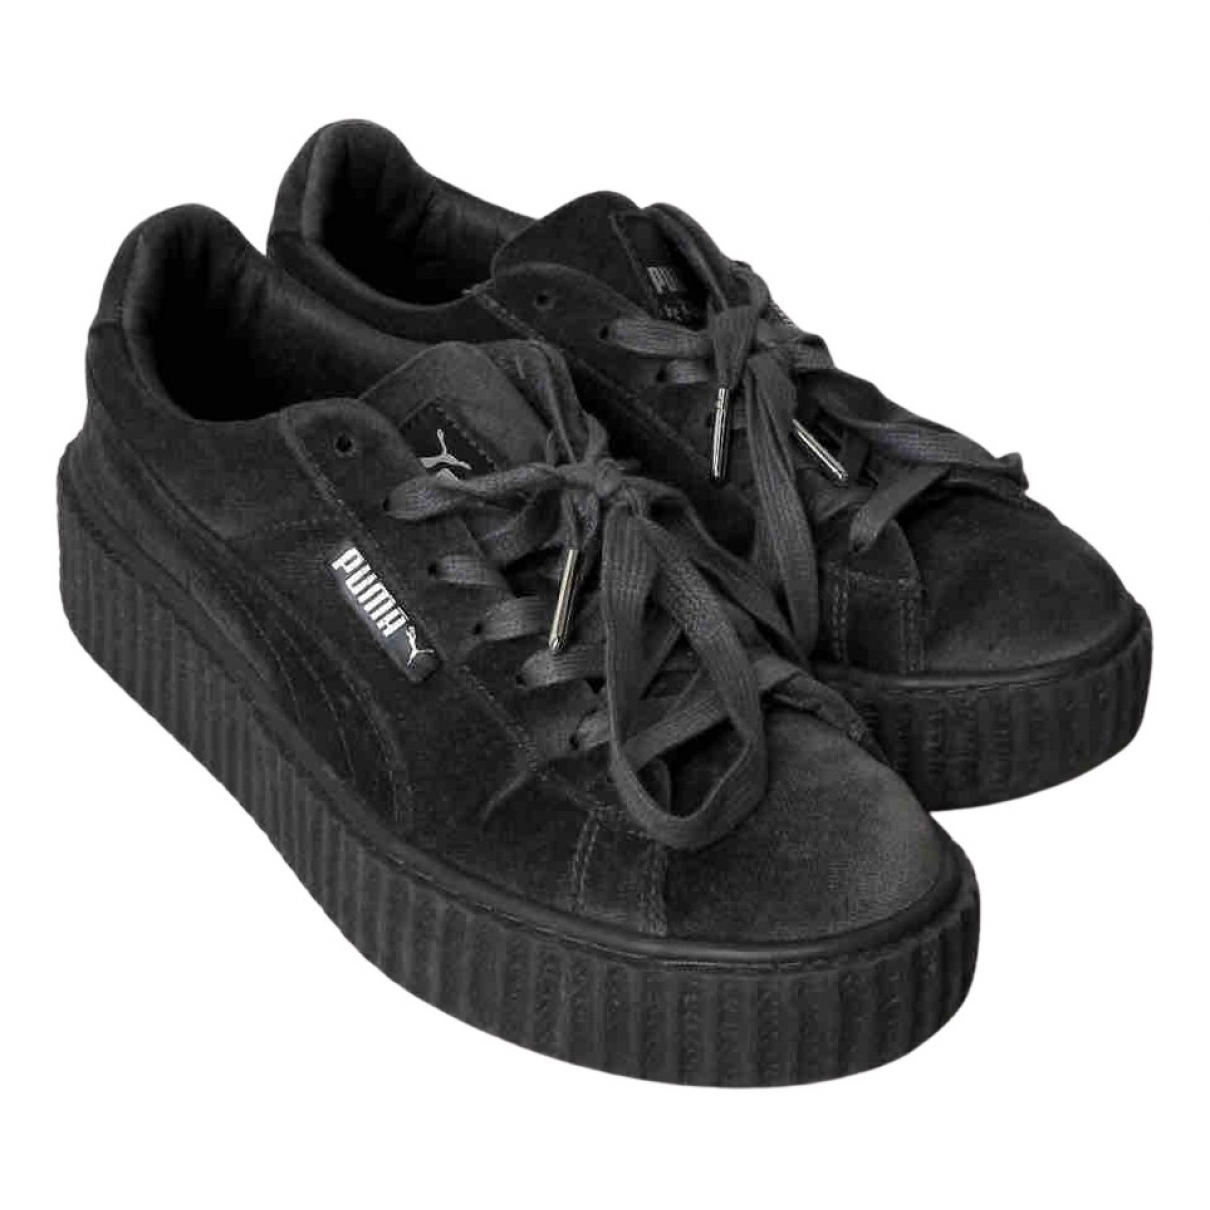 Fenty X Puma N Grey Velvet Trainers for Women 38.5 EU